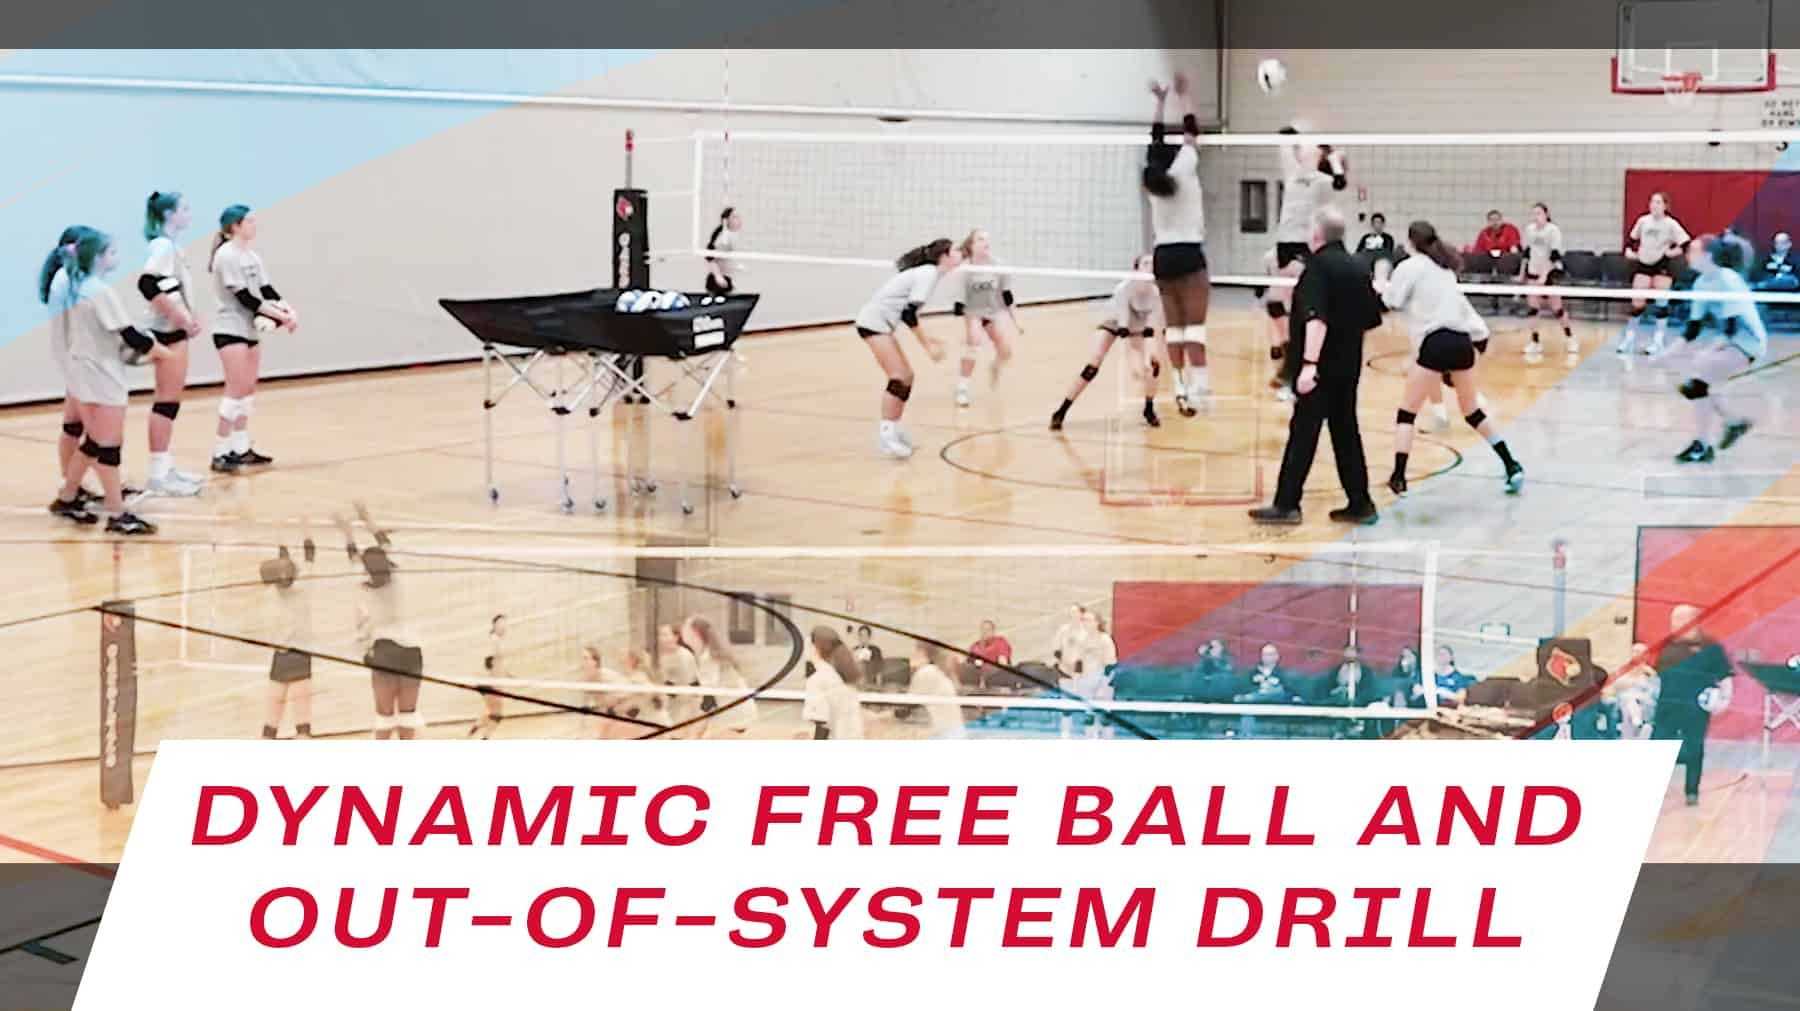 Dynamic Free Ball And Out Of System Drill With Images Coaching Volleyball Volleyball Drills Volleyball Practice